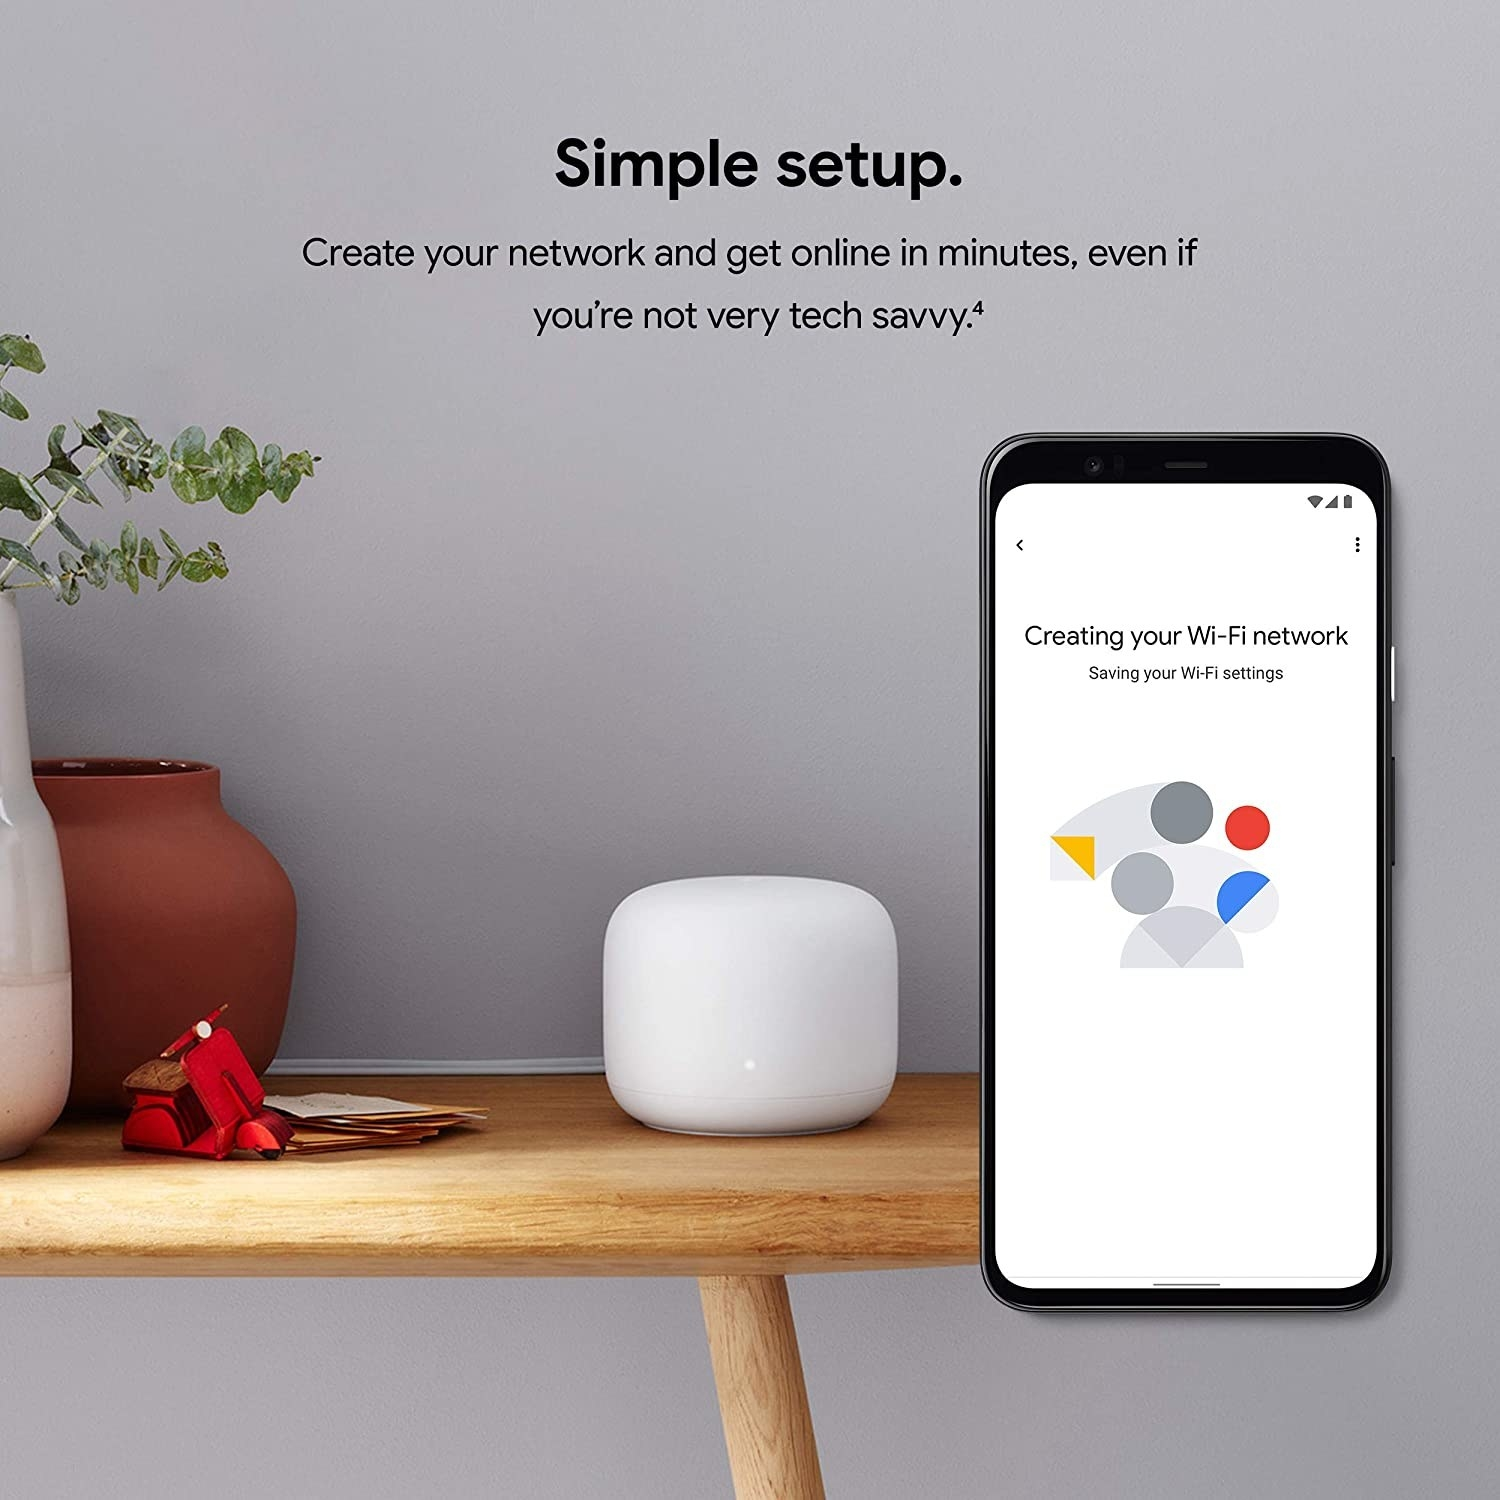 Google Nest Router, featuring a natural curved shape